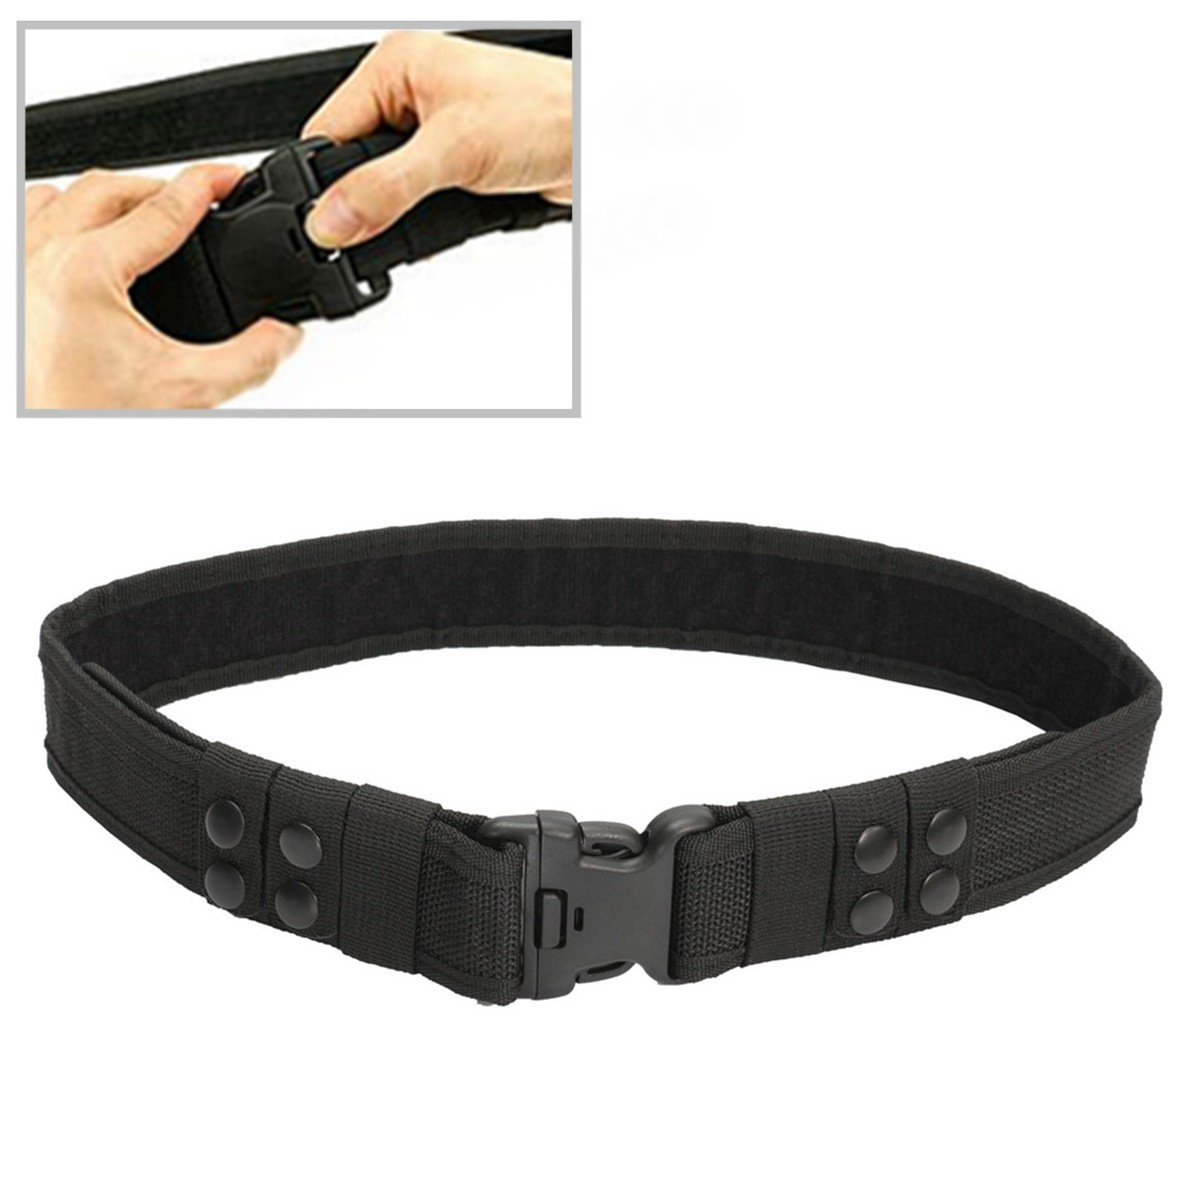 Men Heavy Duty Security Utility Belt Guard Paramedic Army Police Nylon Waistband